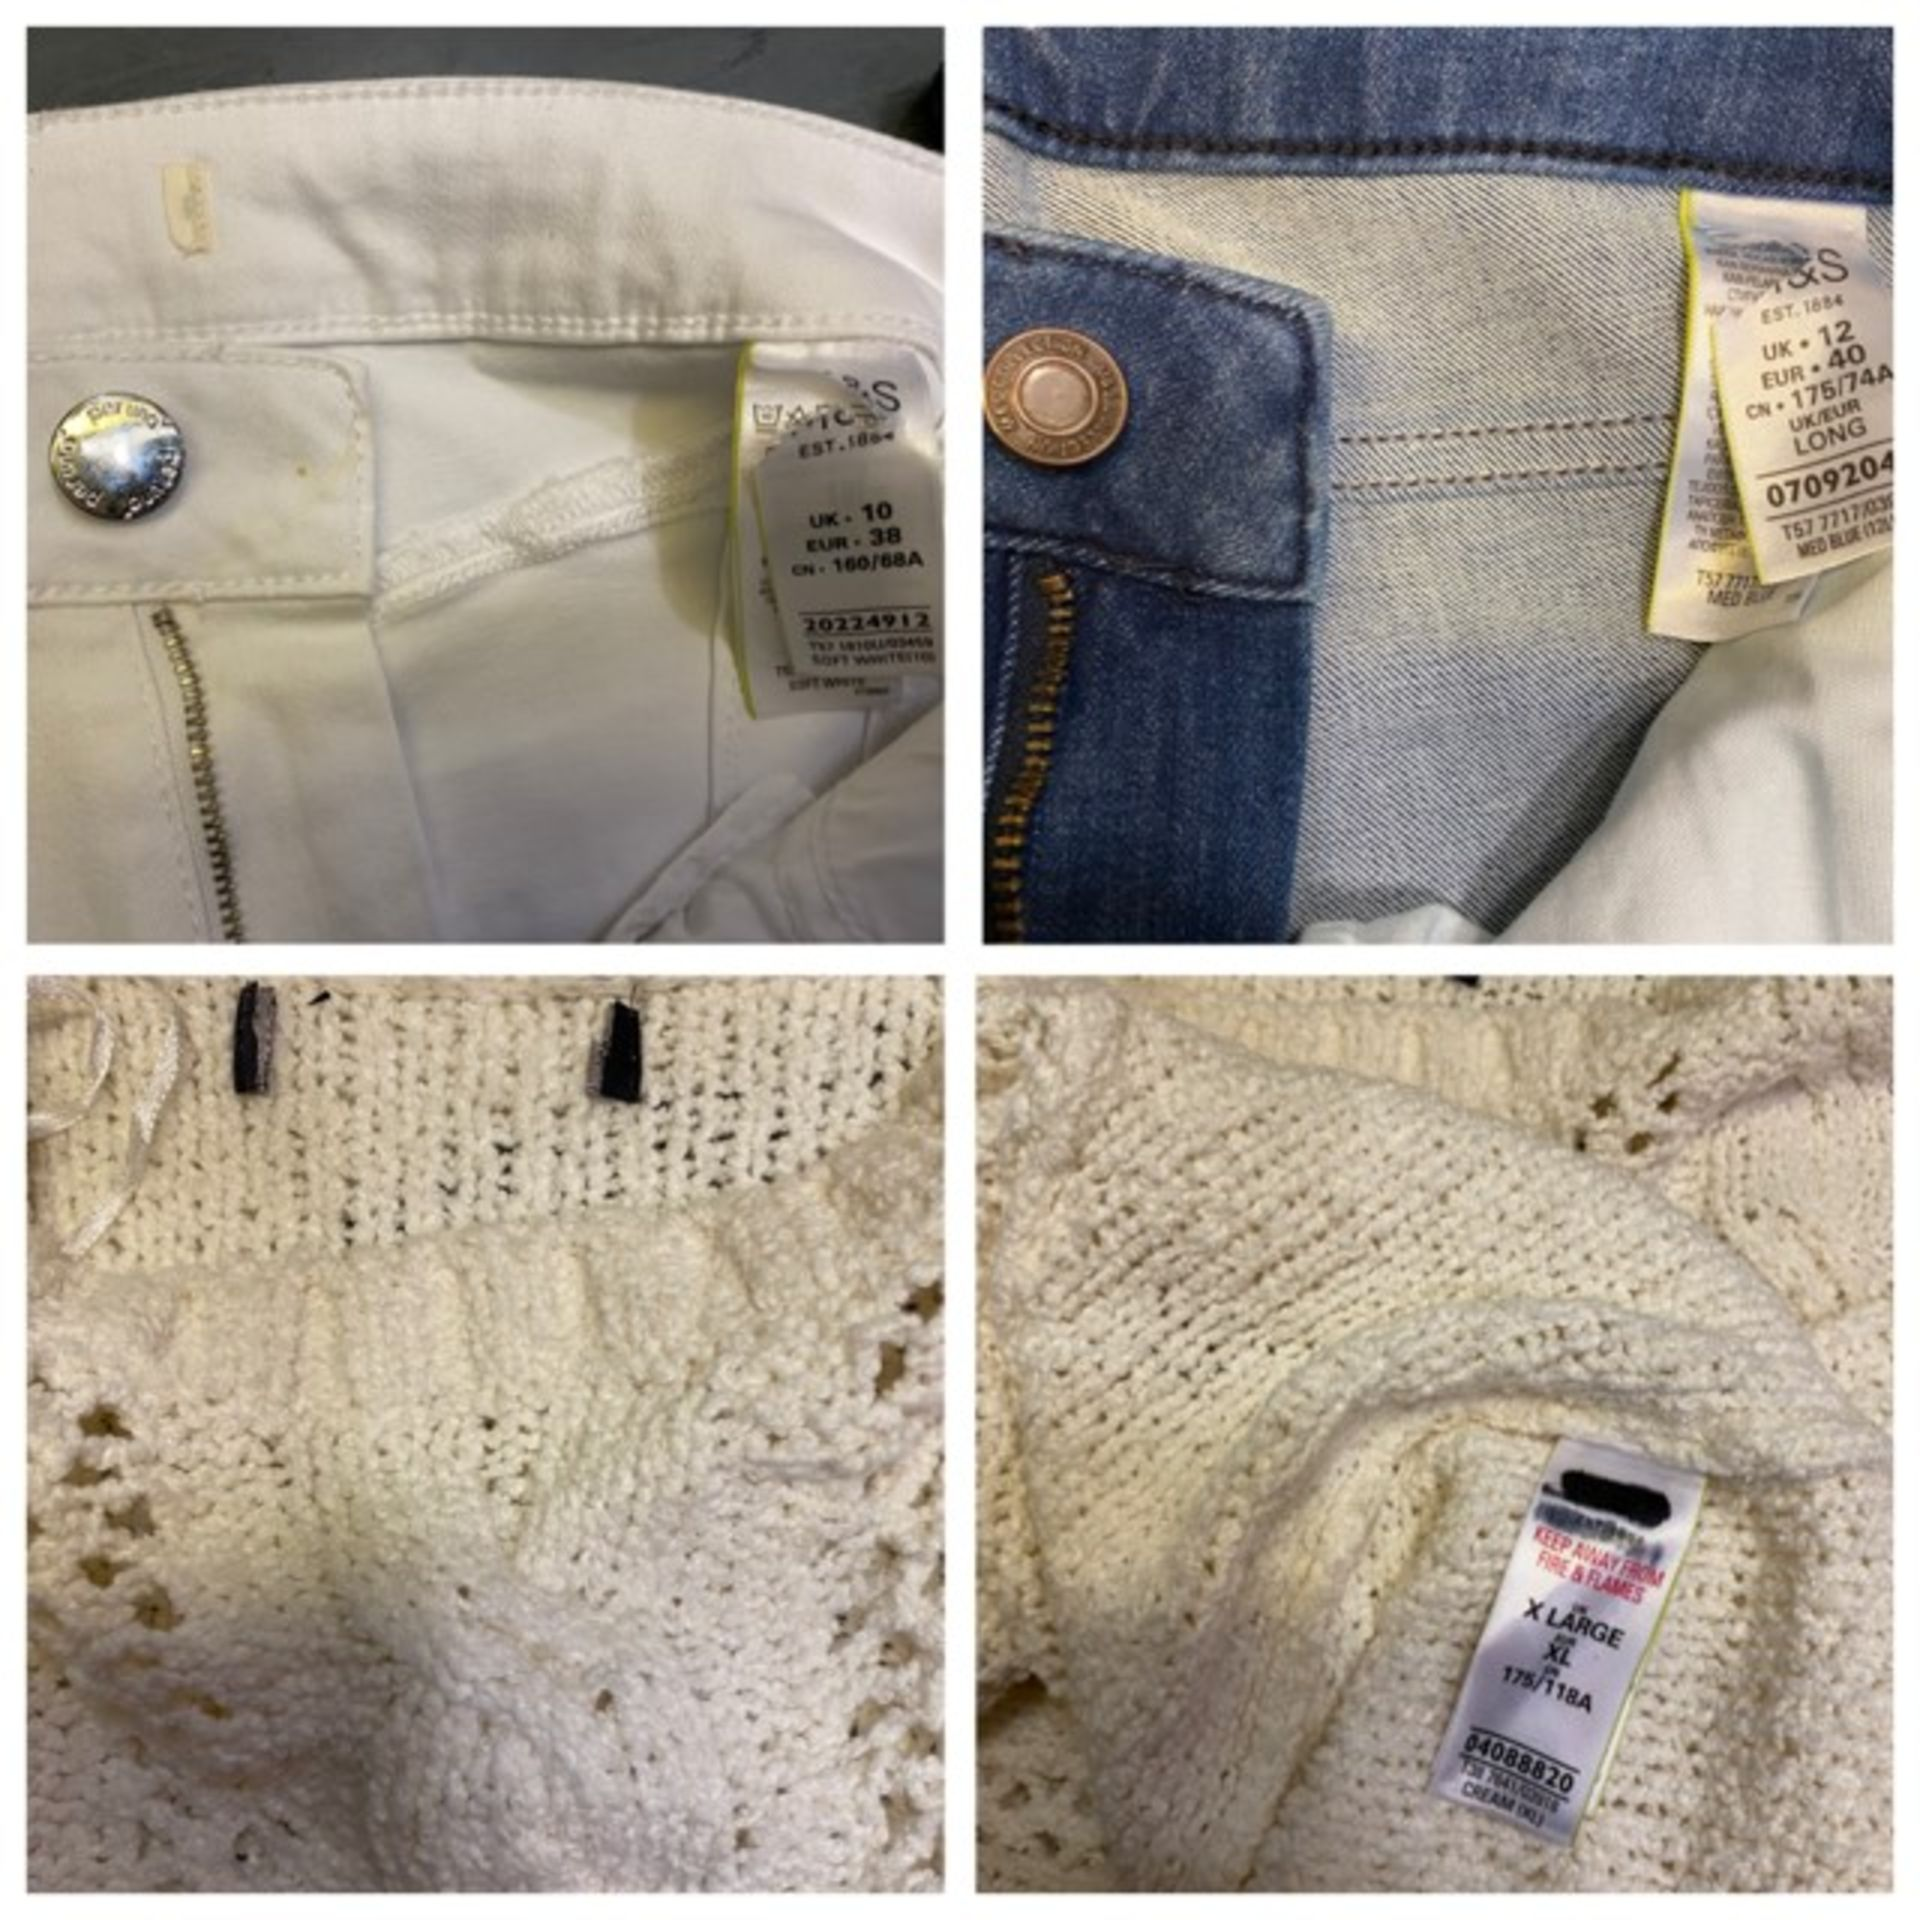 1 x mixed pallet = 204 items of Grade A M&S Womenswear. Approx Total RRP £5100.00 - Image 10 of 10